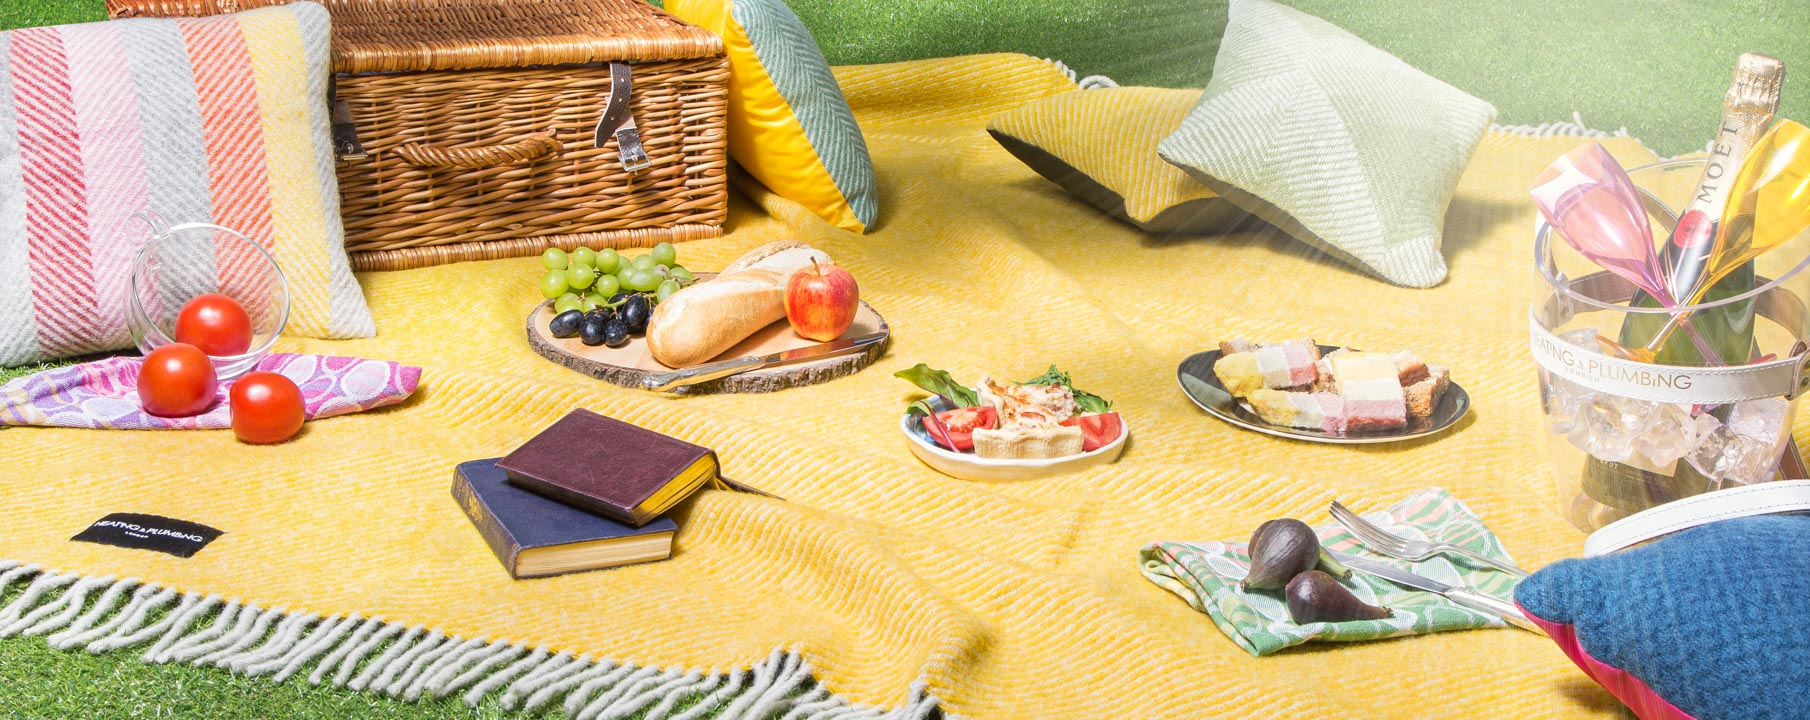 What to pack for a Picnic Date?